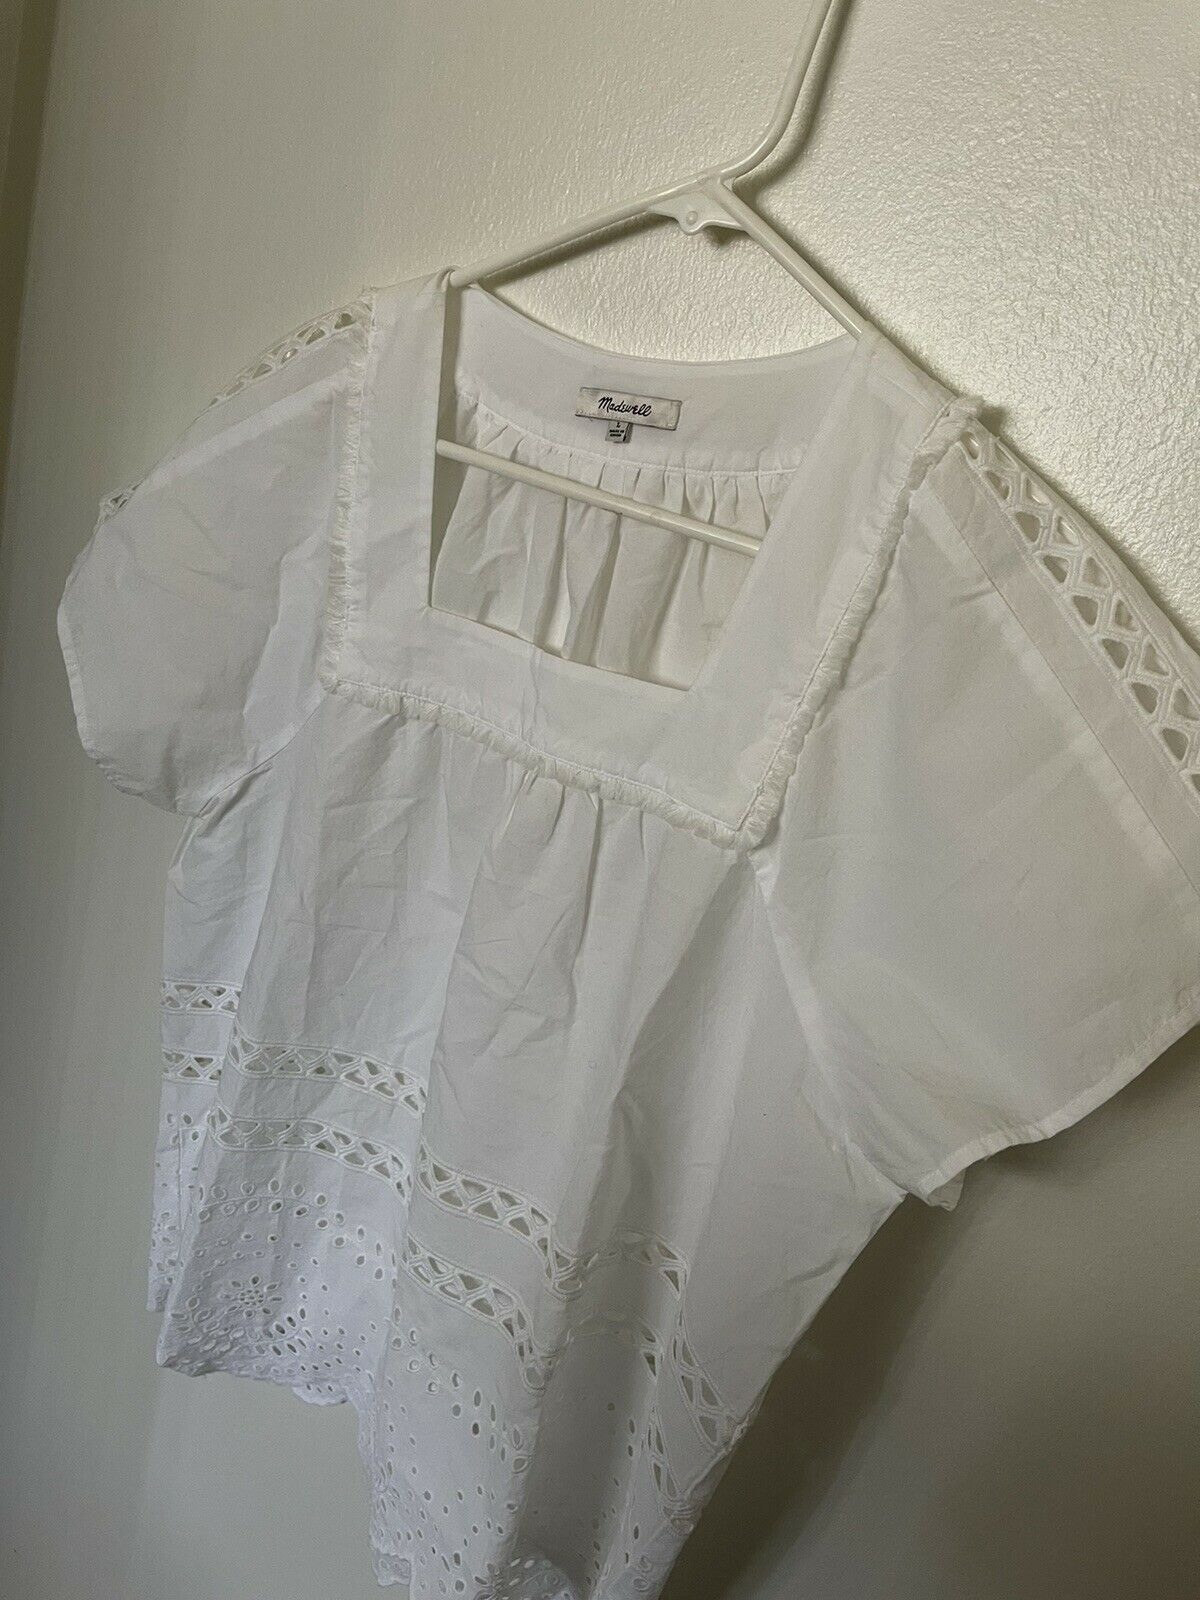 Madewell Top Womens Size L Cotton White Eyelet An… - image 2